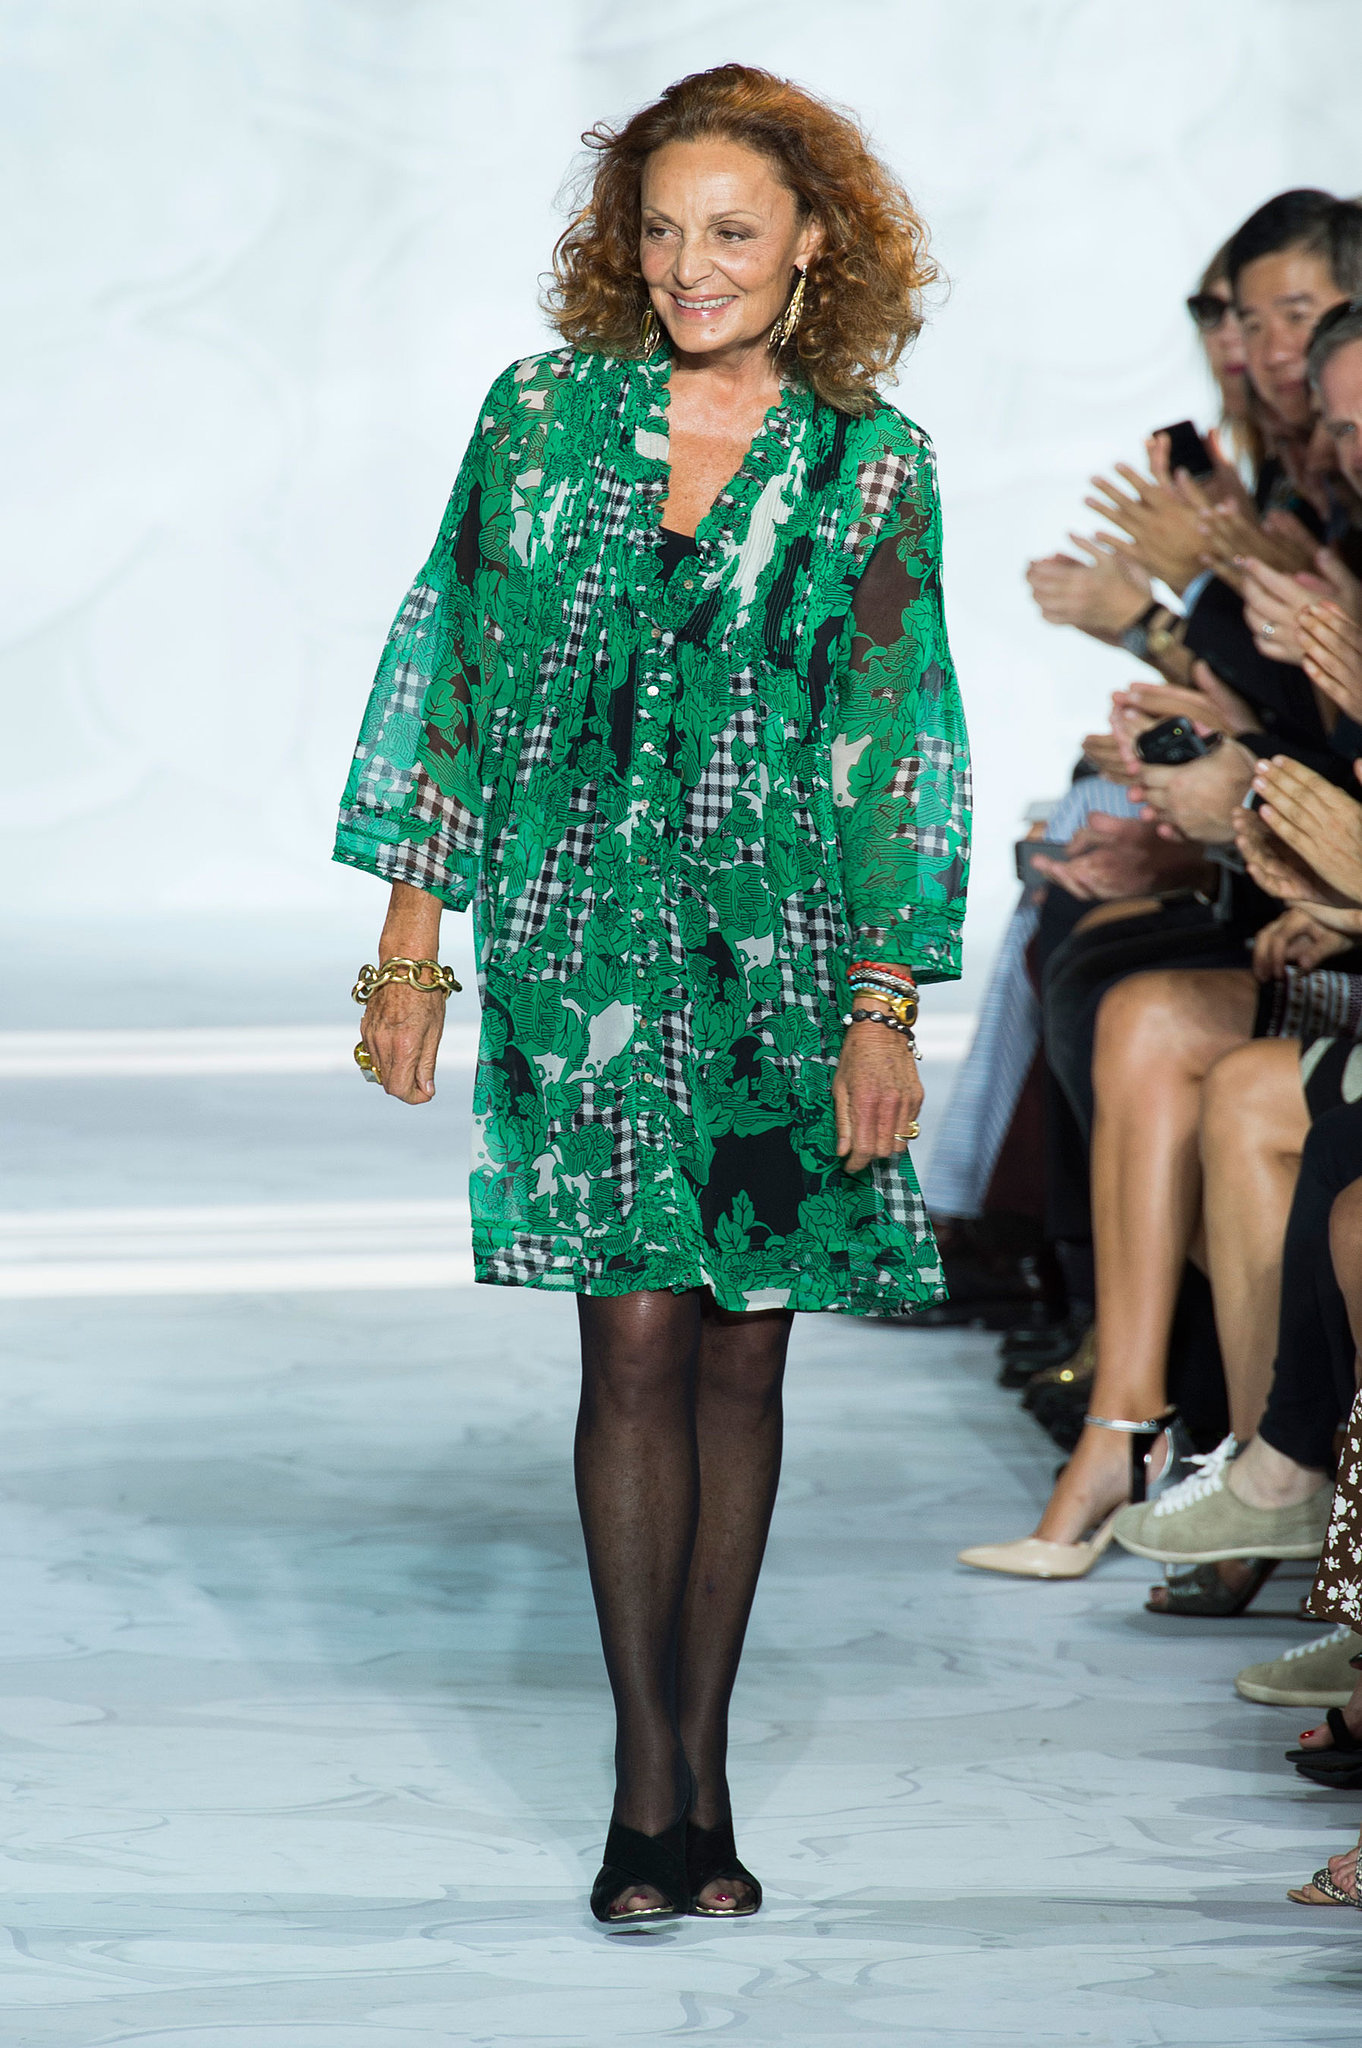 diane von furstenberg spring 2015 dvf just outdid 40 years of fashion history popsugar fashion. Black Bedroom Furniture Sets. Home Design Ideas